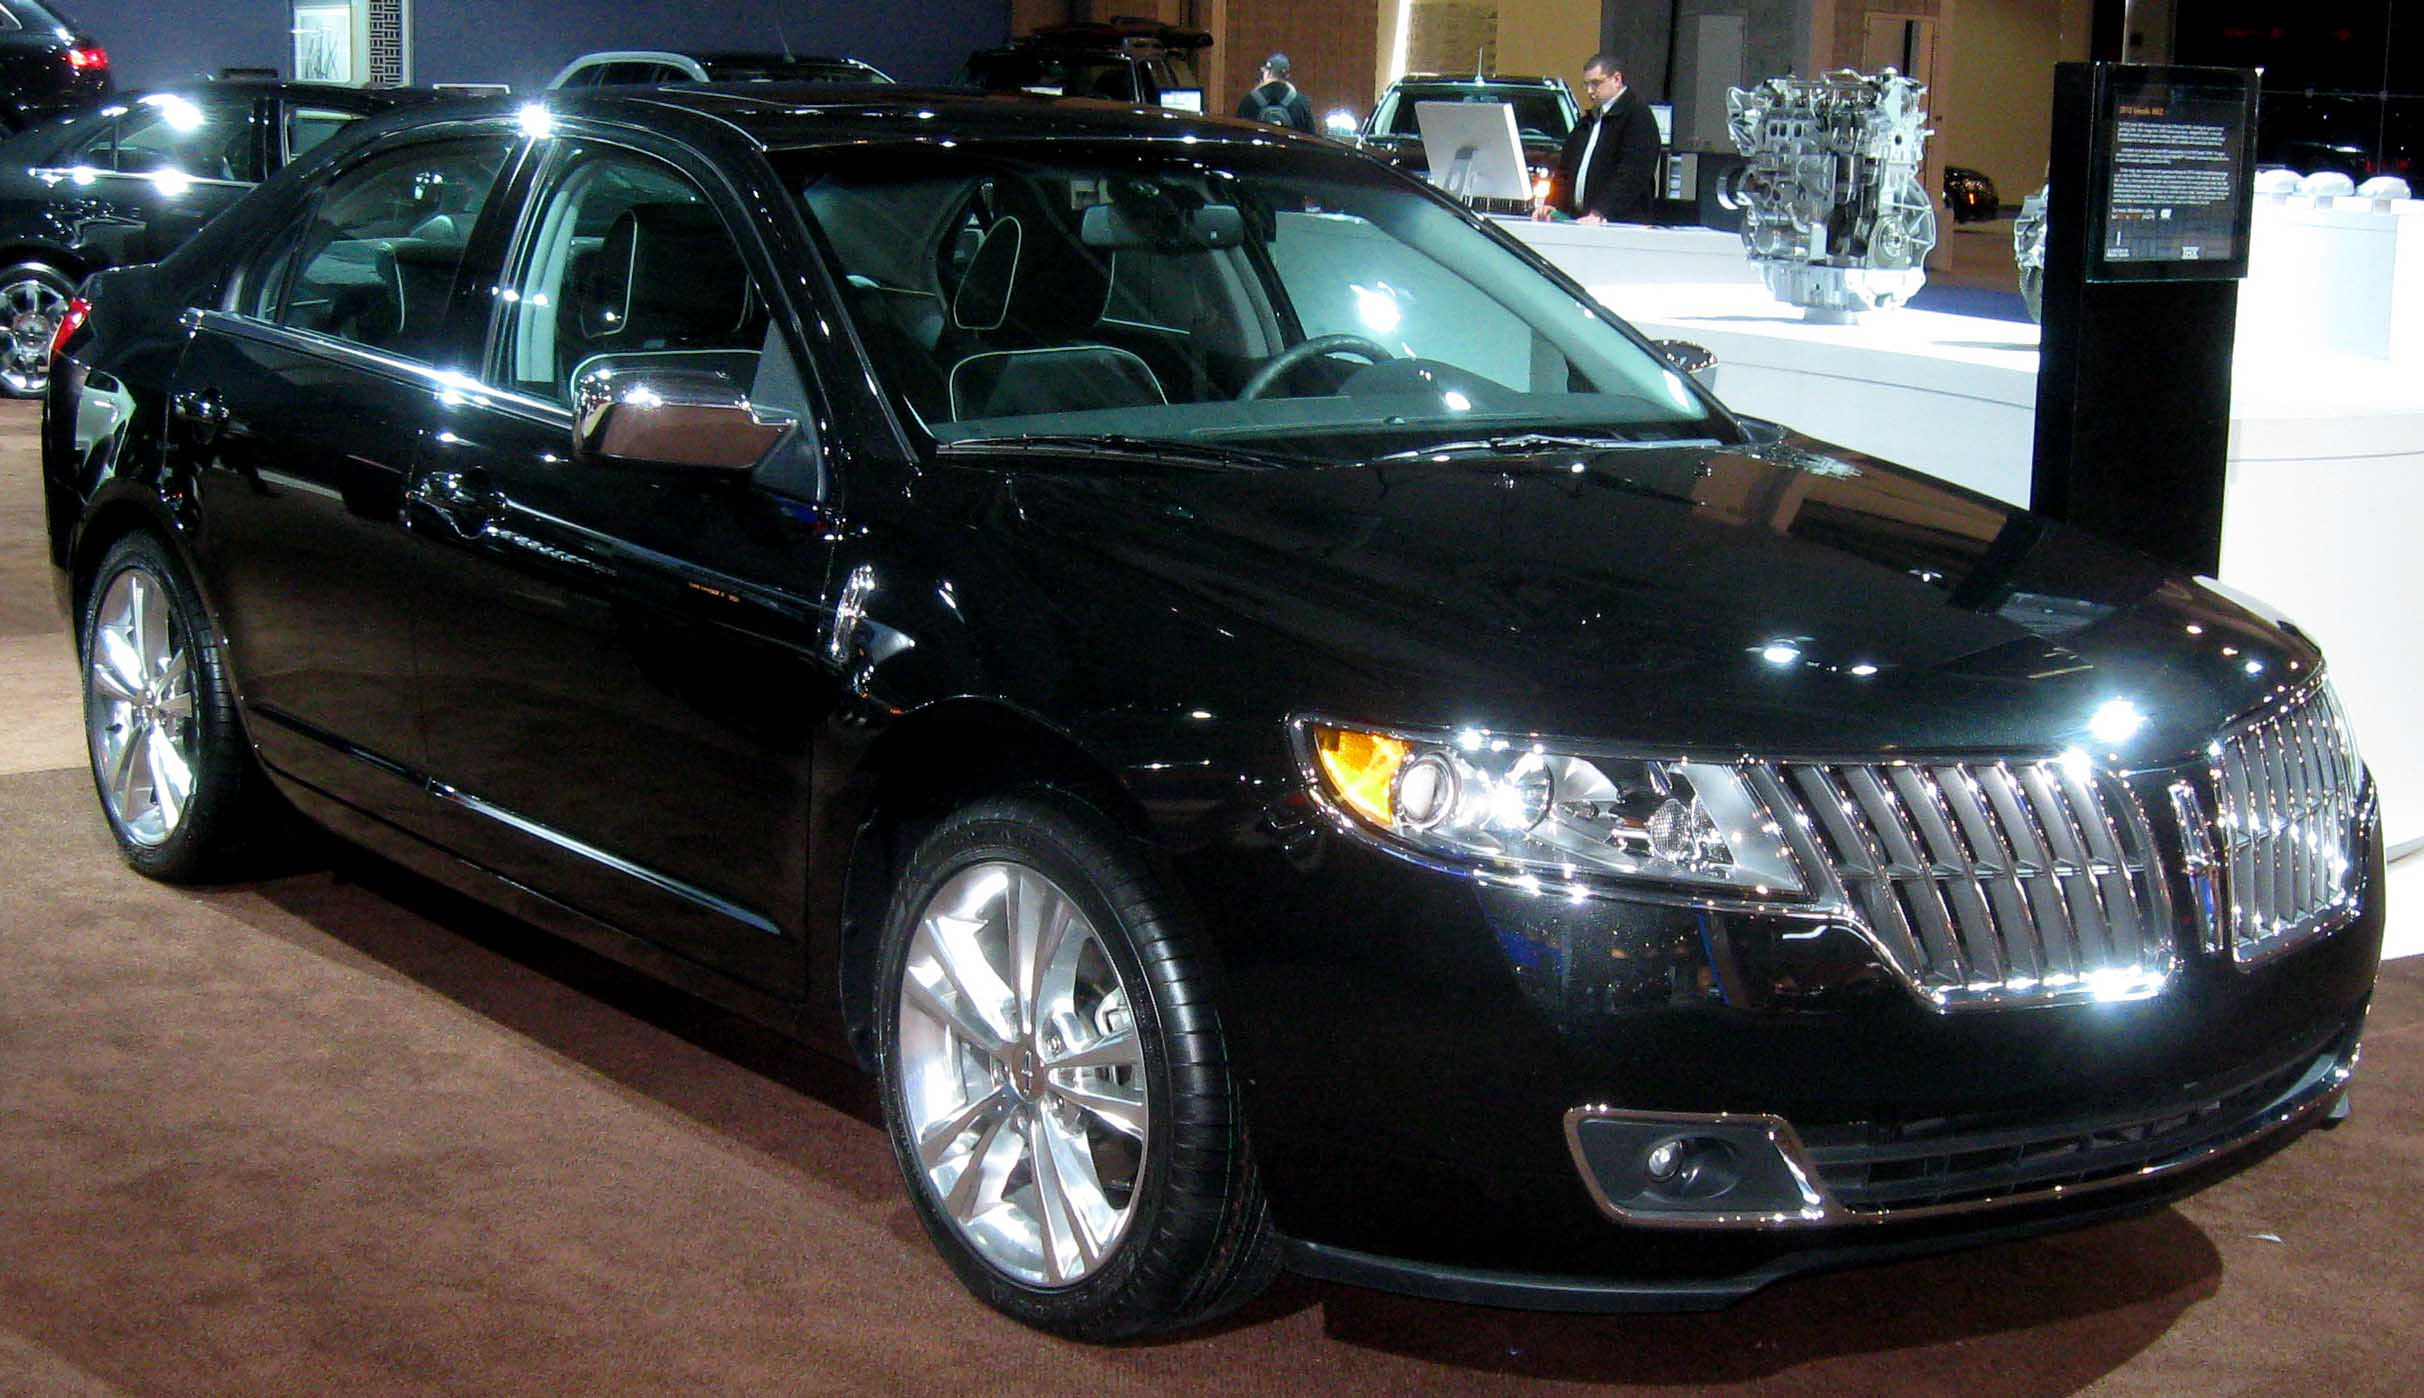 File:2010 Lincoln MKZ--DC.jpg - Wikimedia Commons